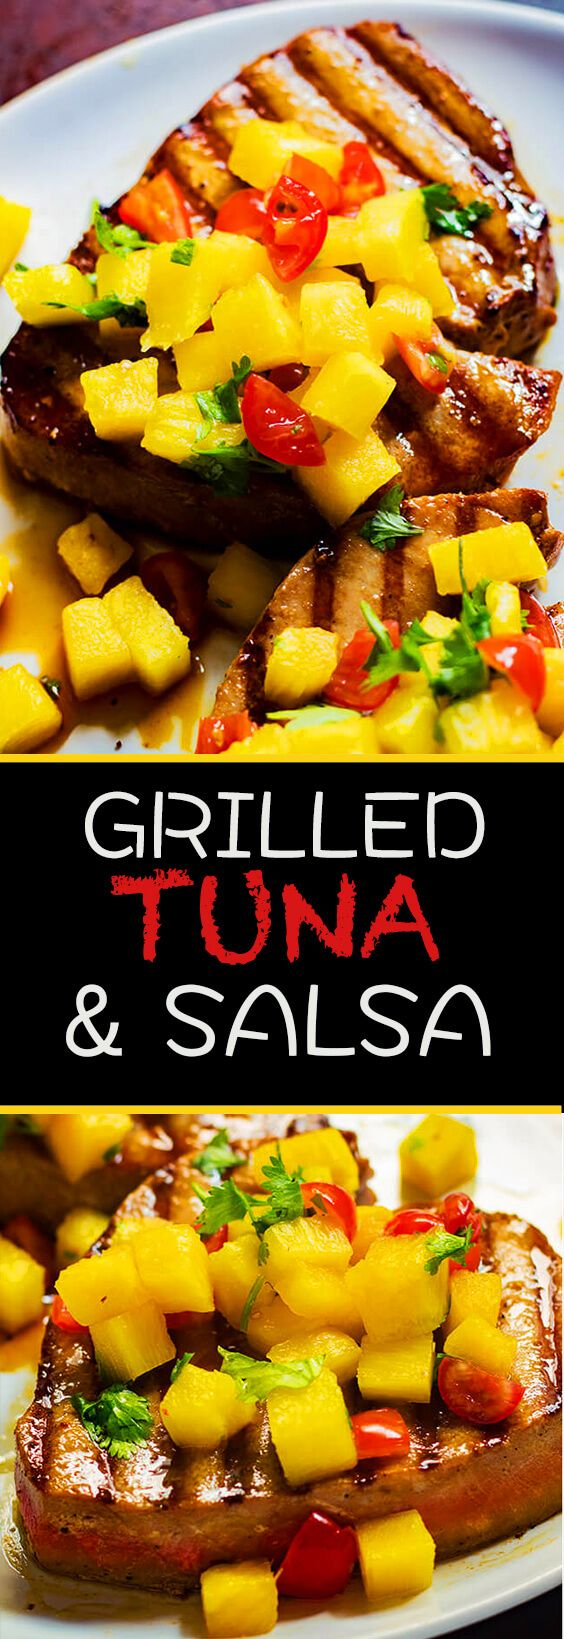 This grilled tuna steaks with pineapple salsa packs the perfect punch of savory, sweet and spicy. Make it today.